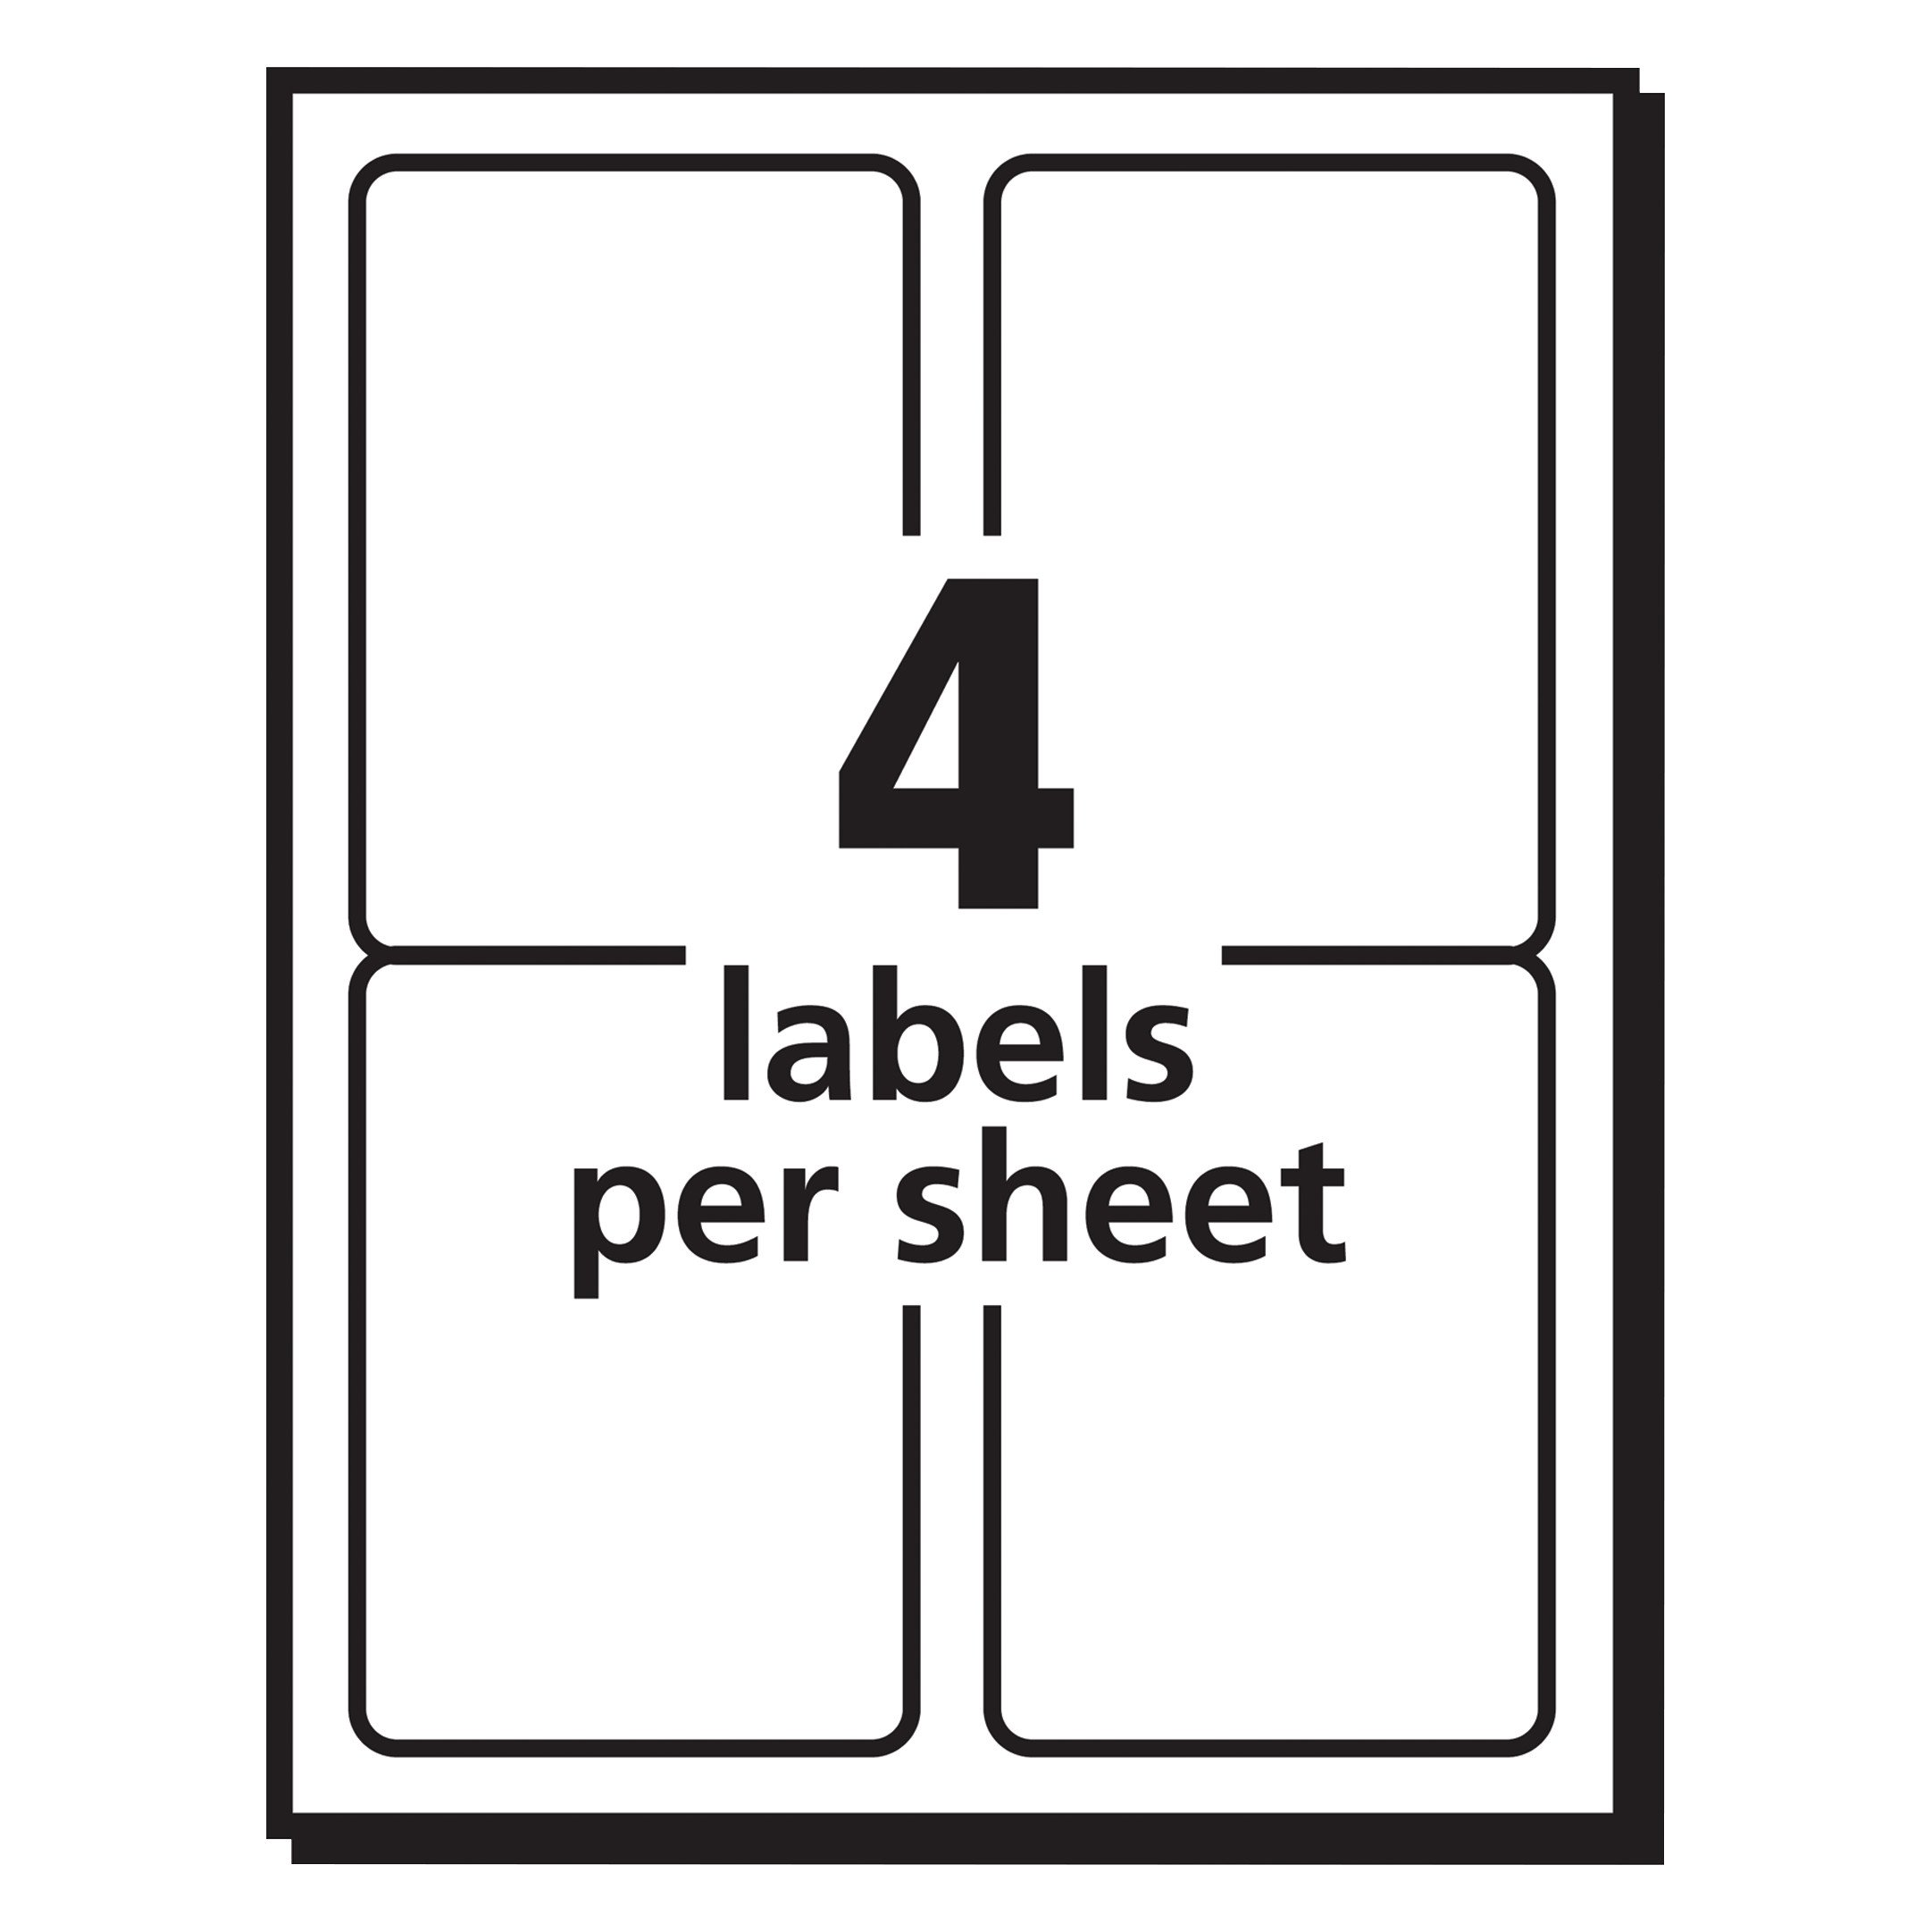 avery shipping address labels inkjet printers 100 labels 3 12 x 5 permanent adhesive trueblock 8168 8168 shipping labels office products